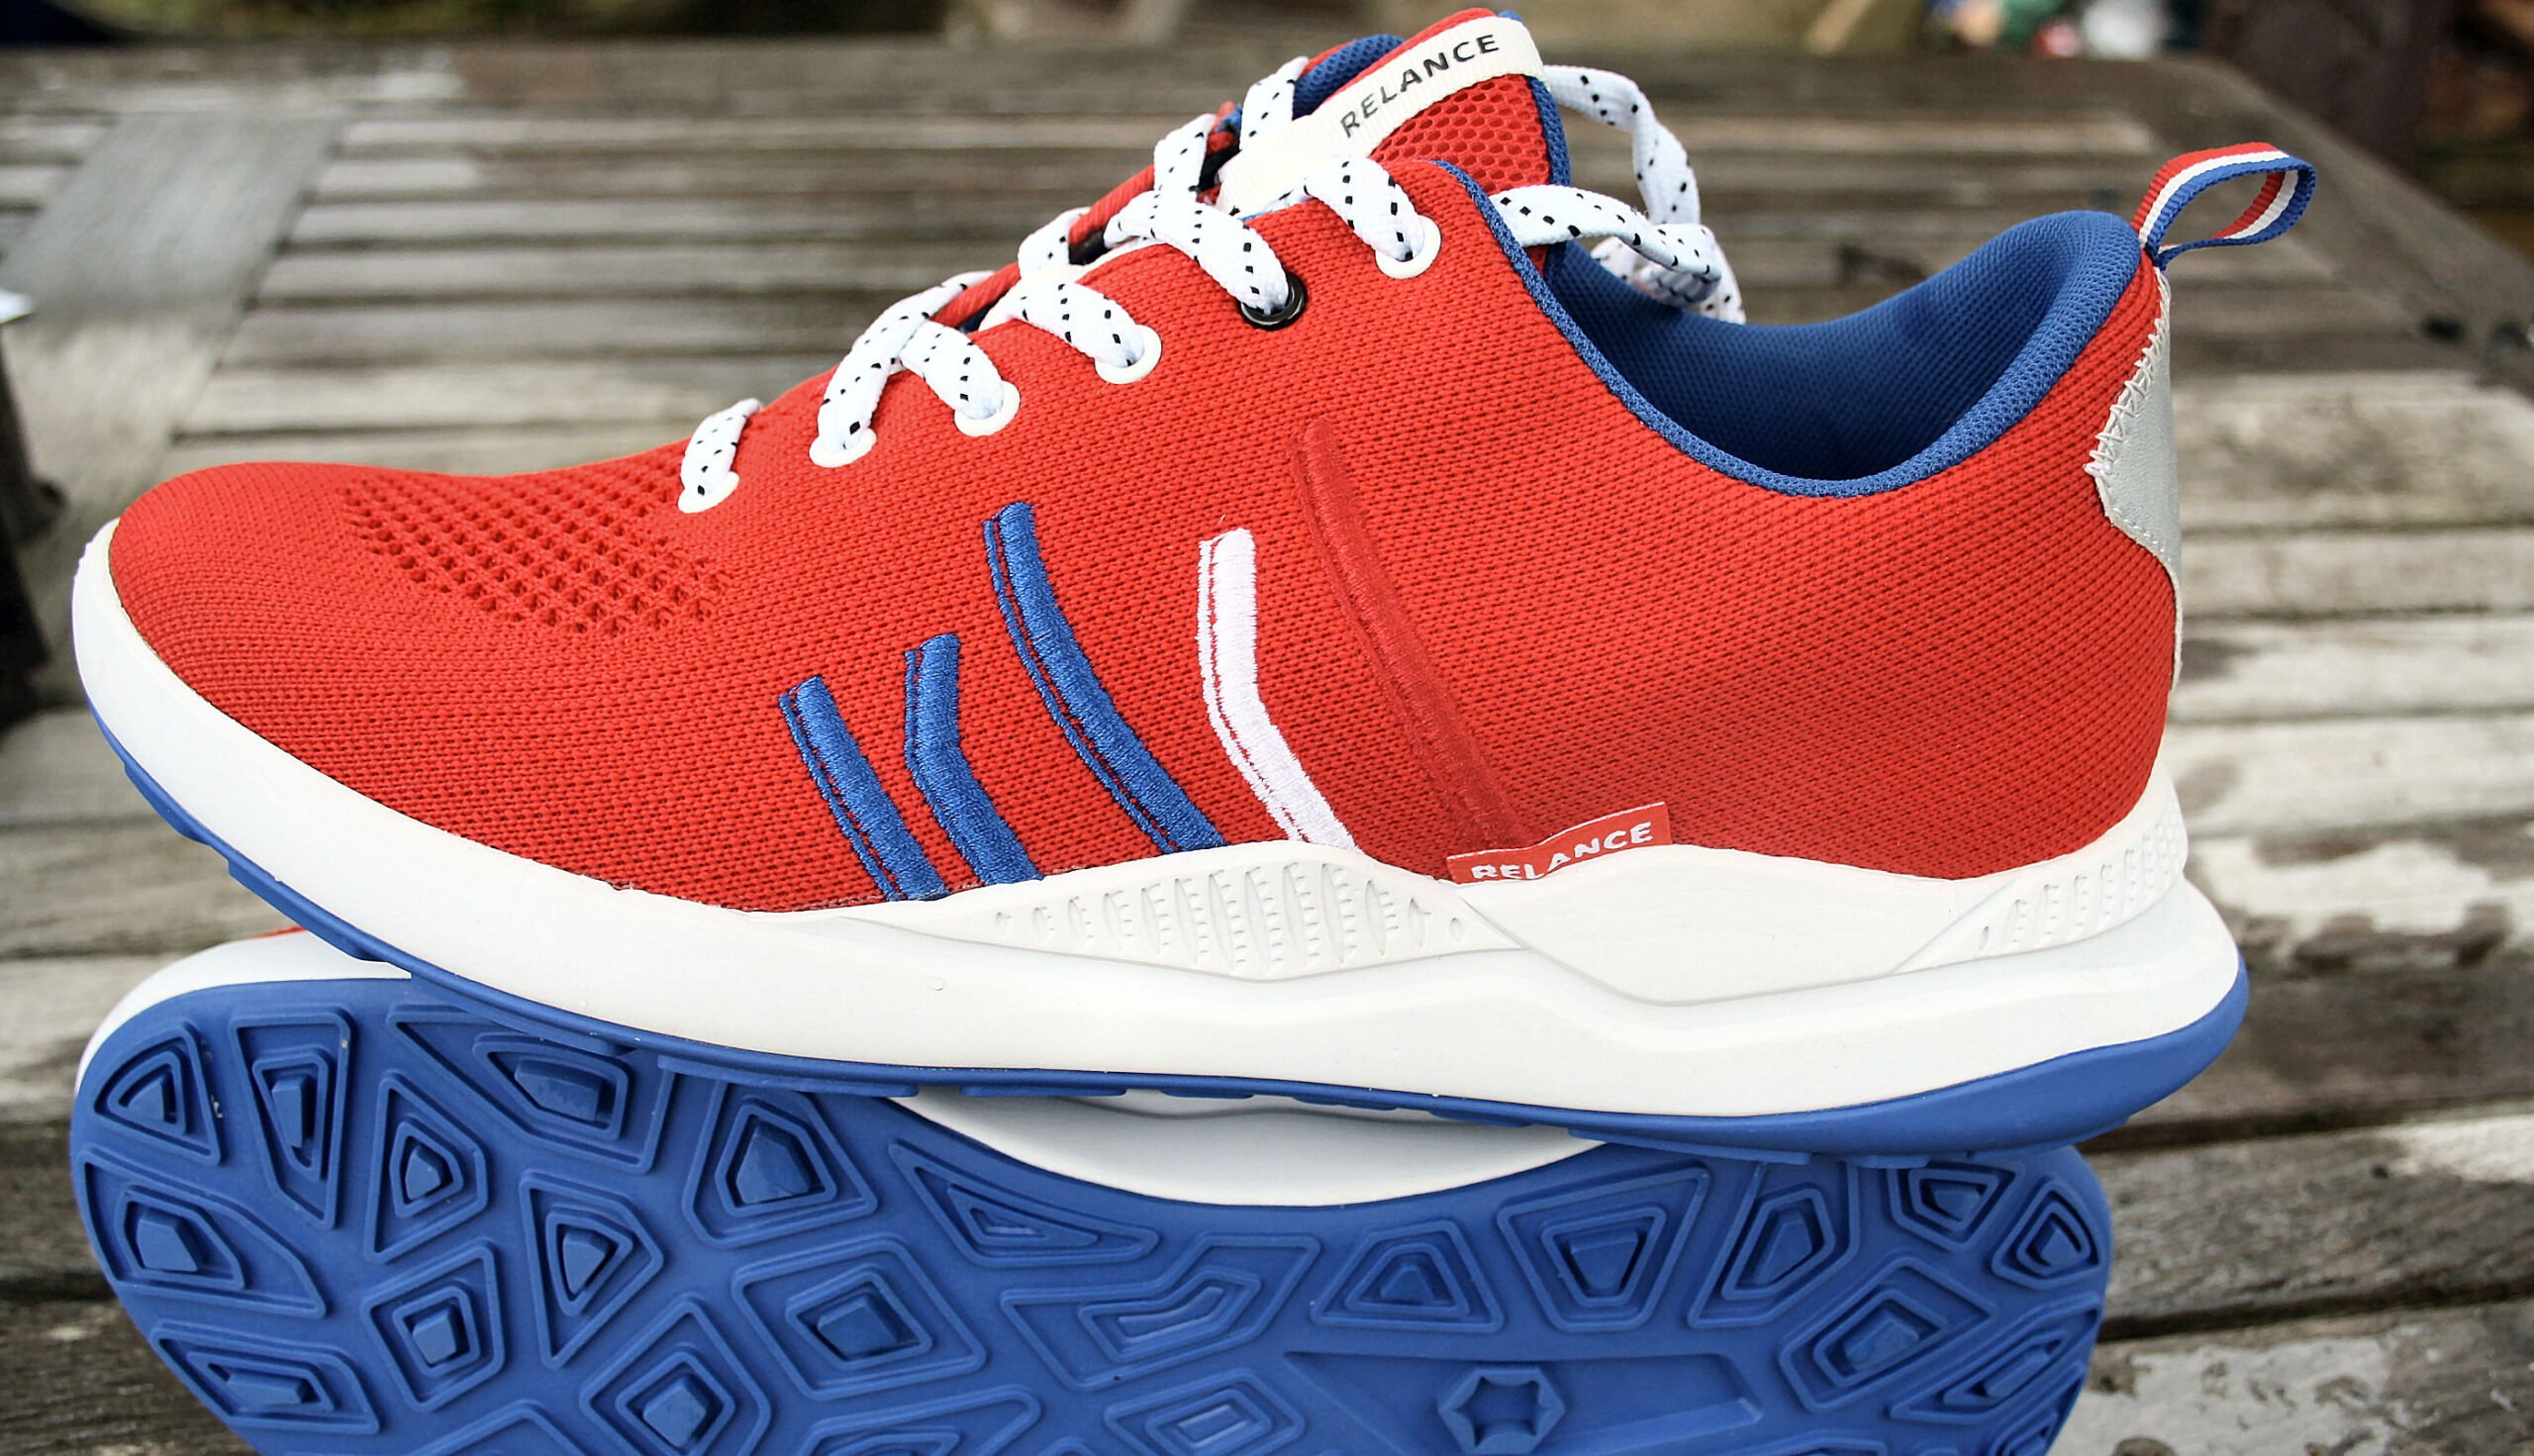 Relance Running Shoe Review